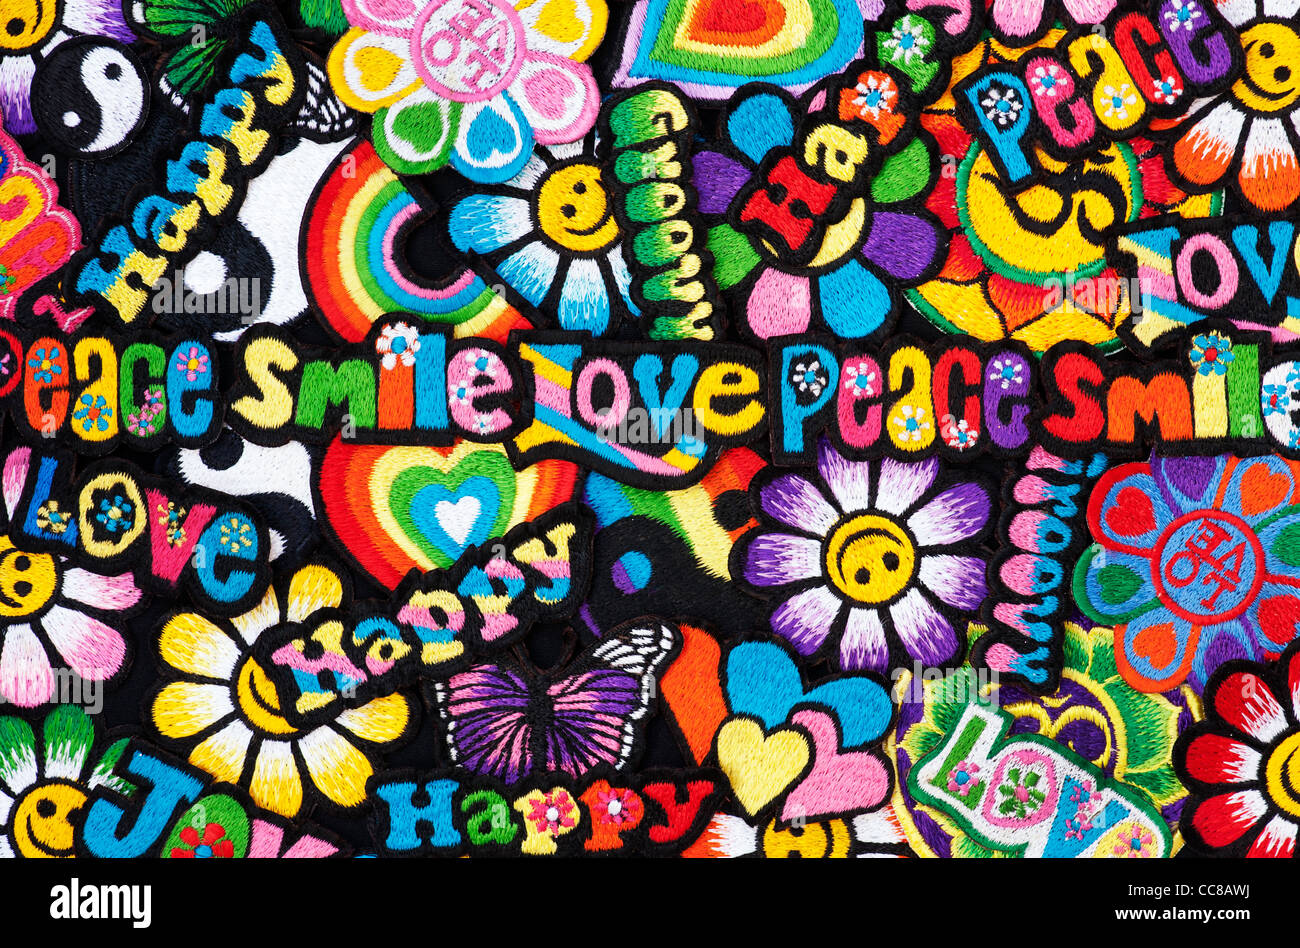 Backgrounds And Love Hippie Peace